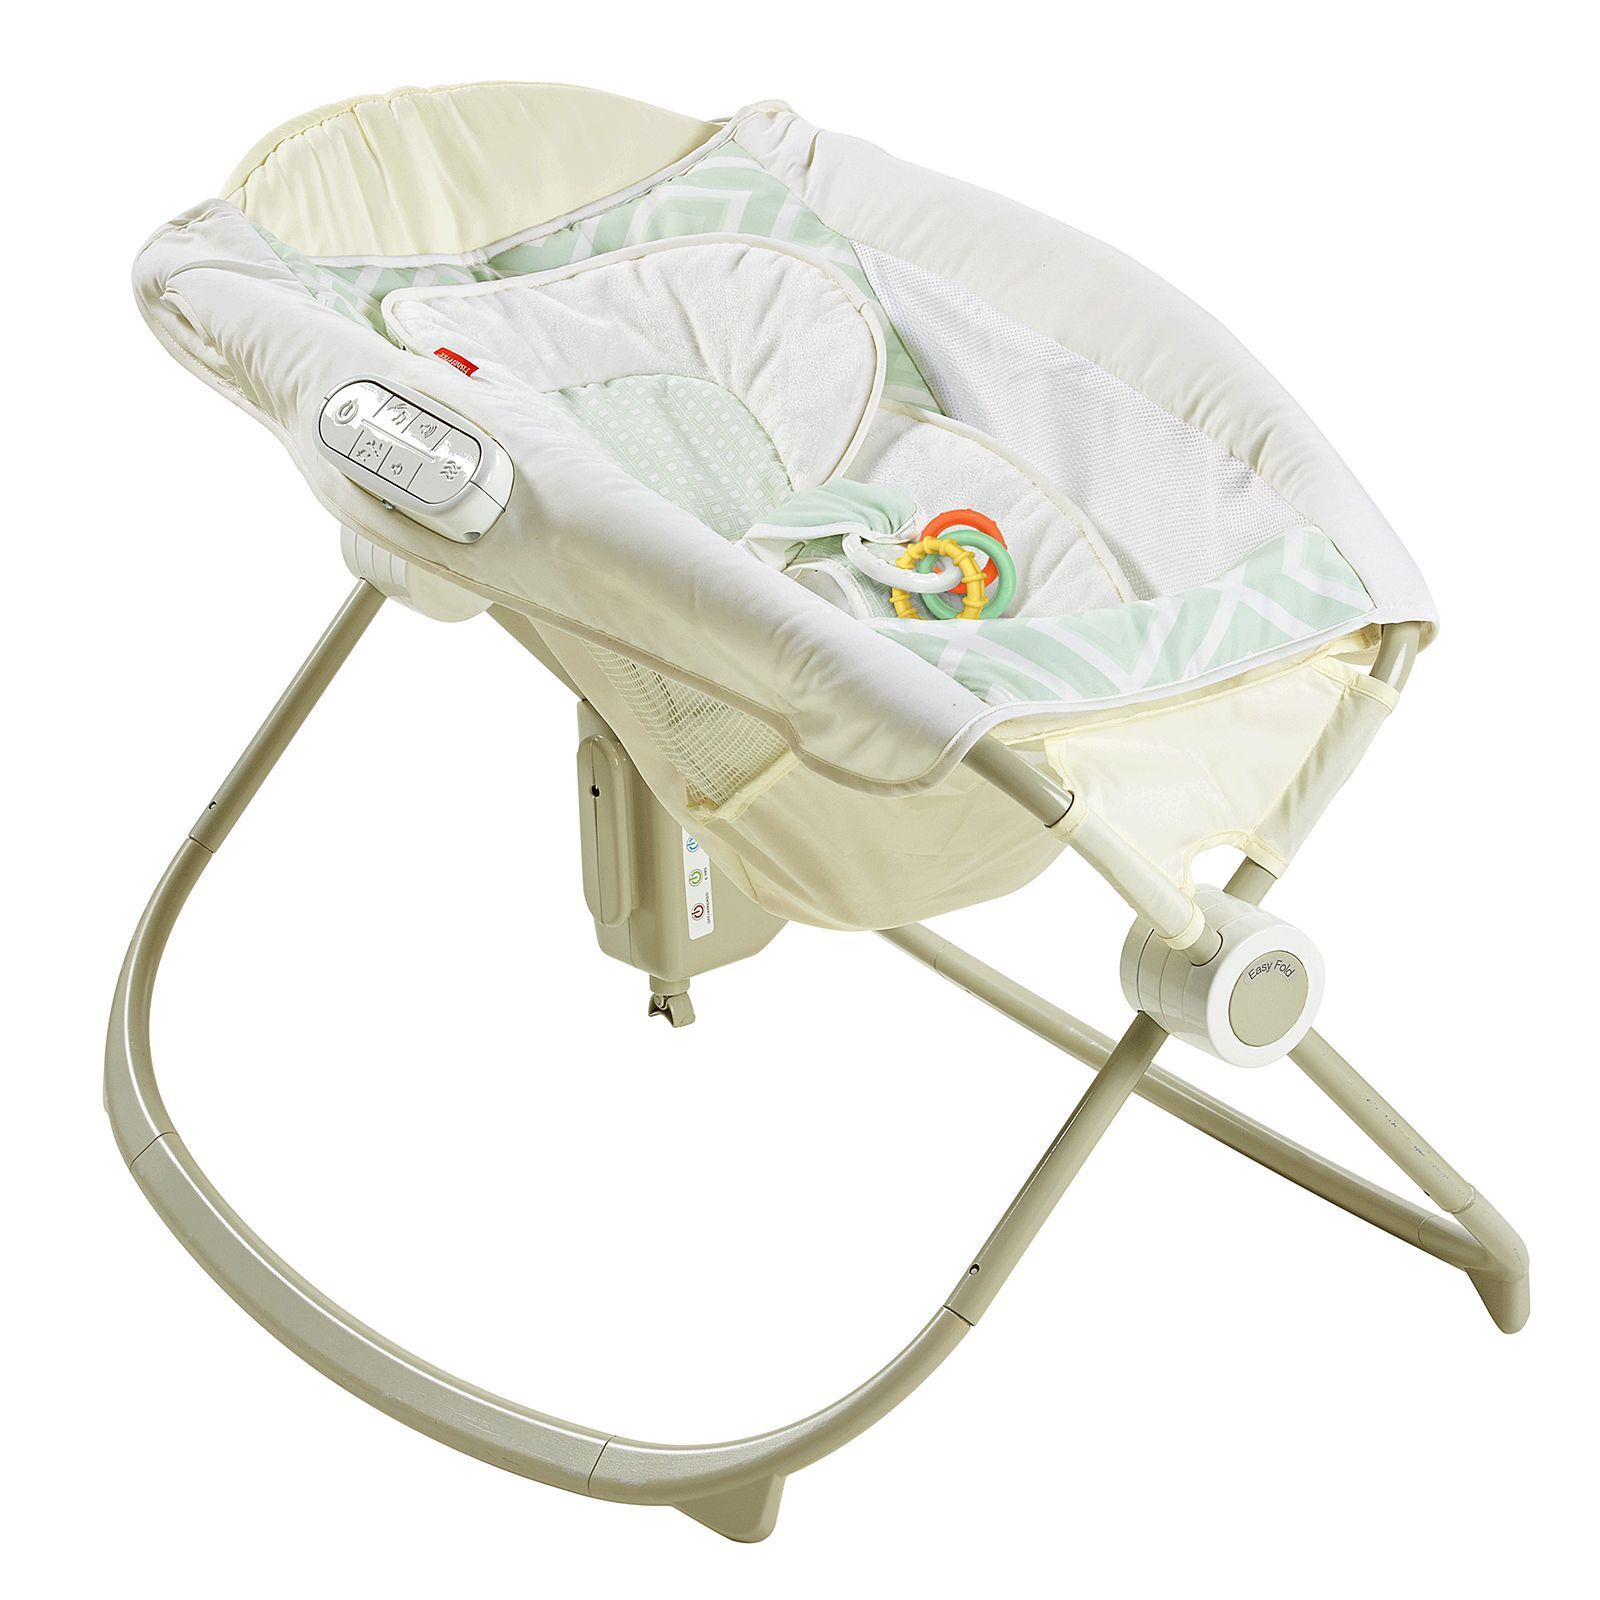 Shop Fisher Price Deluxe Newborn Auto Rock N Play Sleeper With Infant Learning Toaster Smart Connect Free Shipping Today 12360561